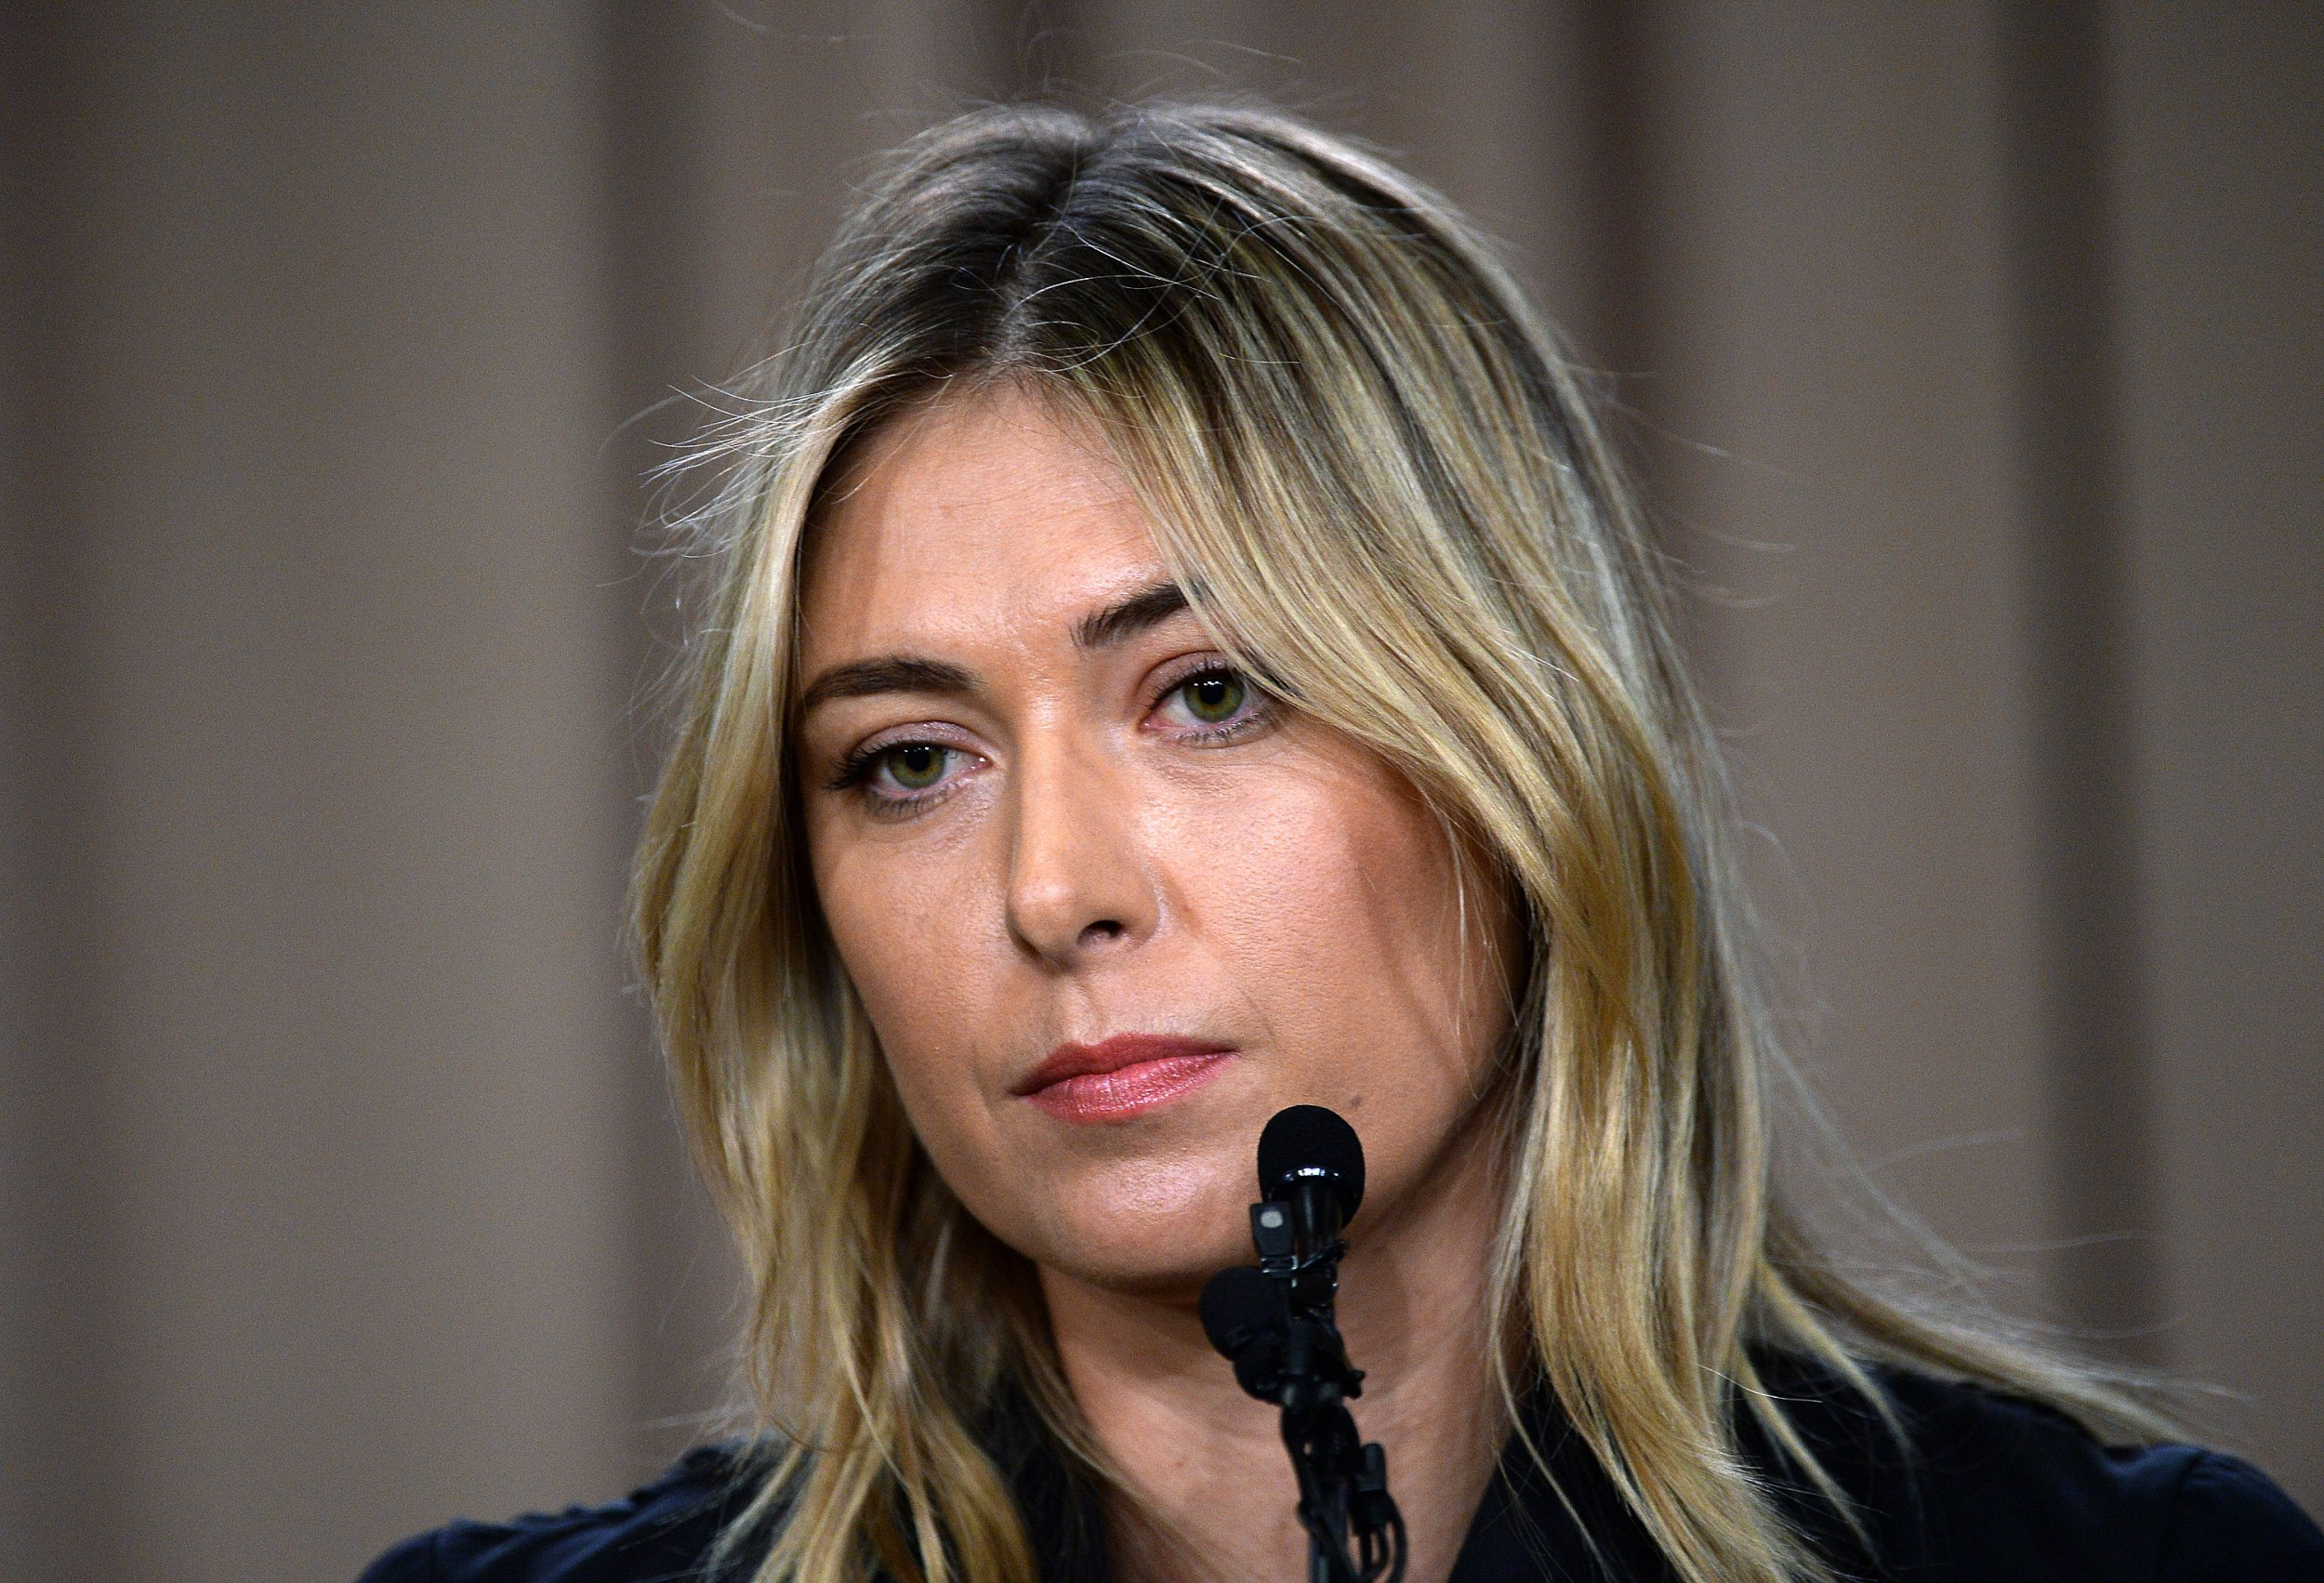 Maria Sharapova faces a lengthy ban from tennis.